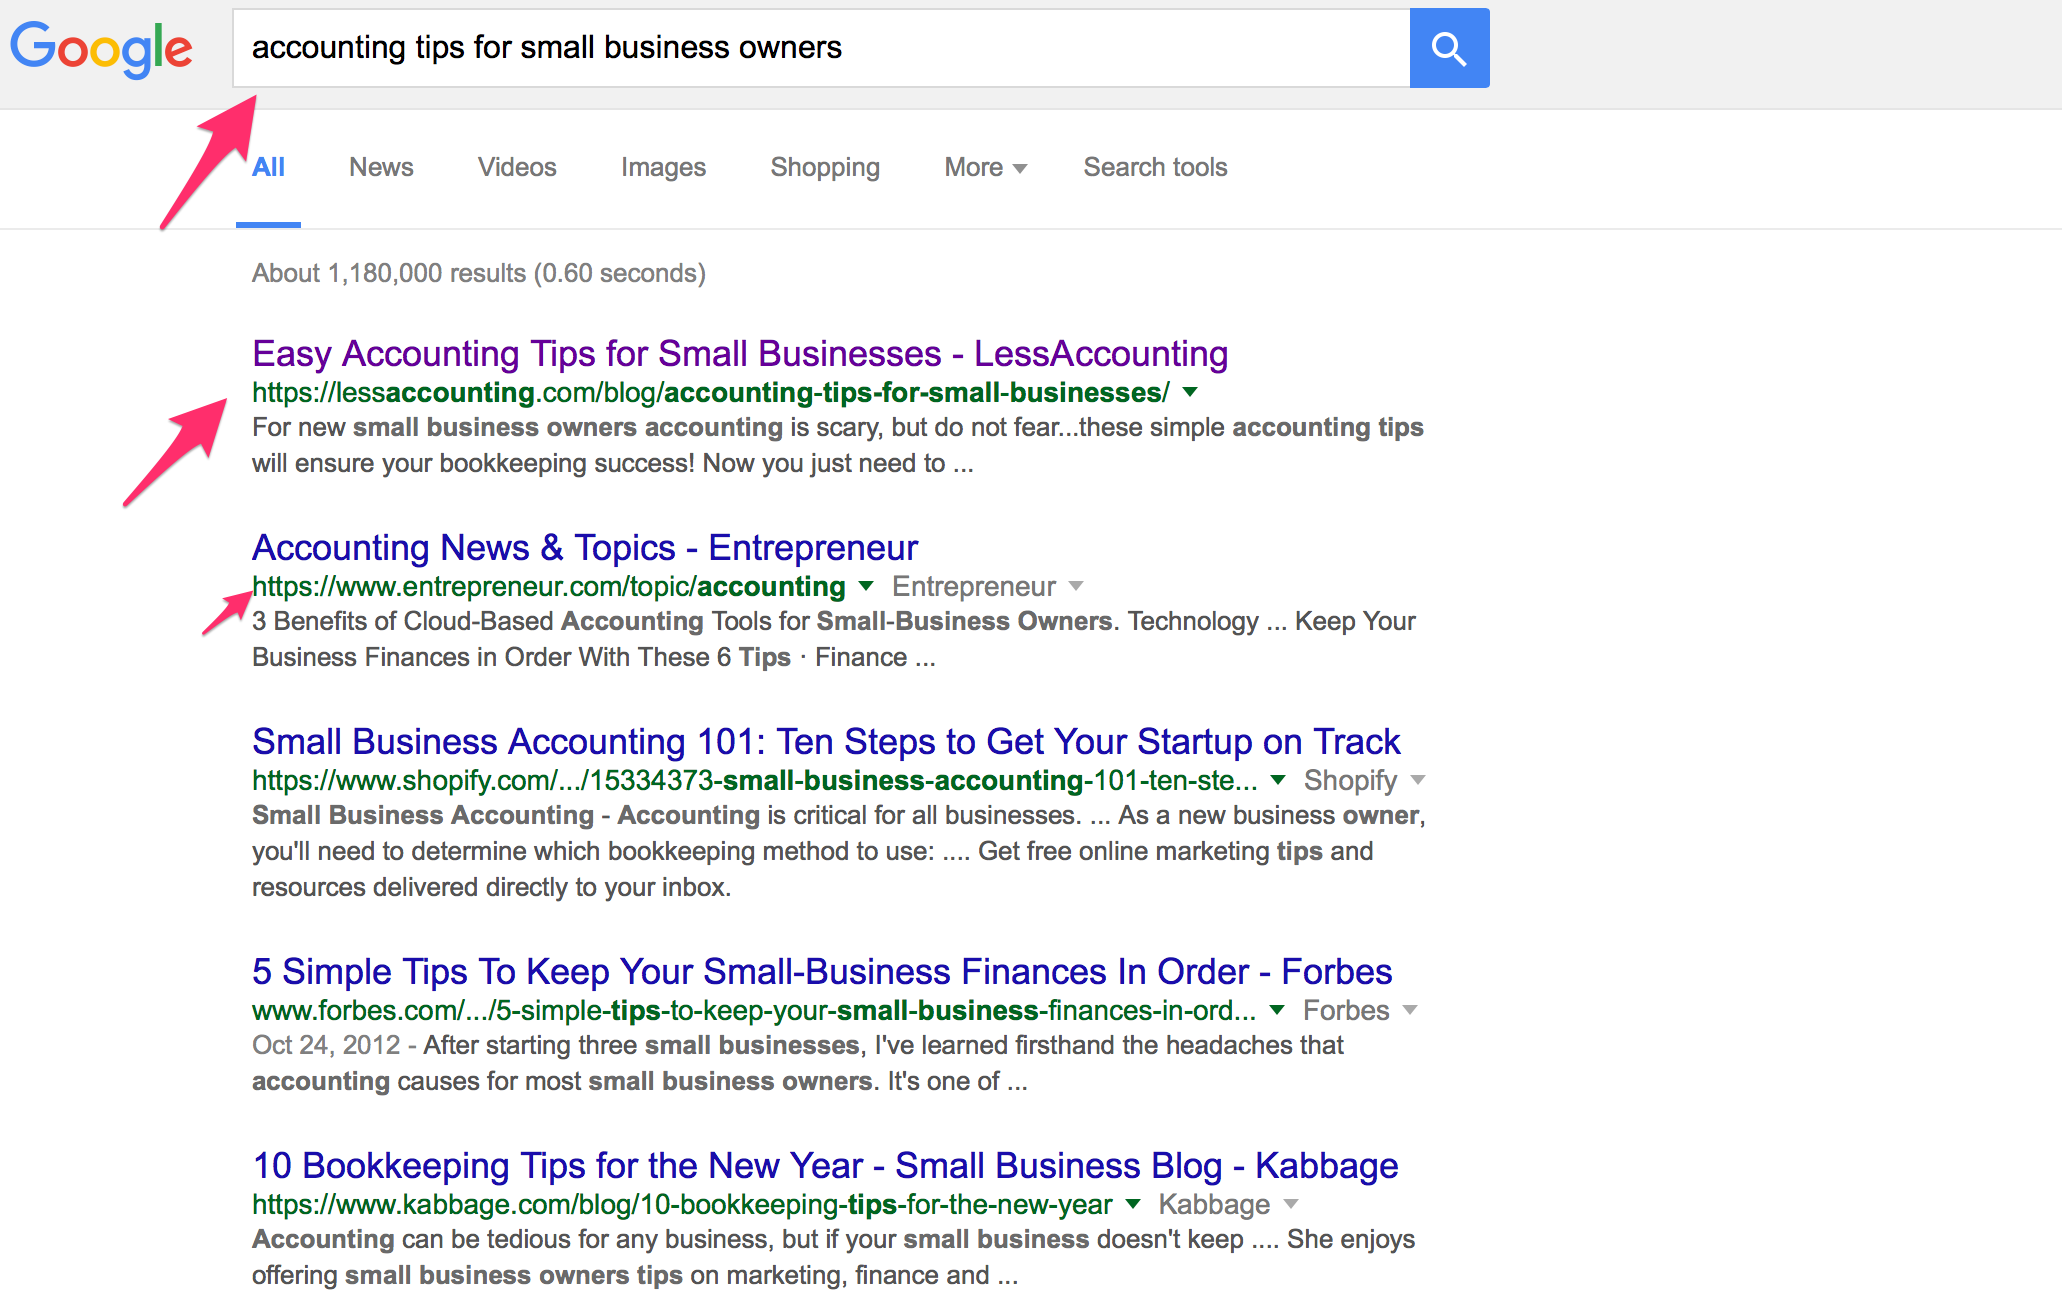 LessAccounting ranks higher well for relative keywords in their industry